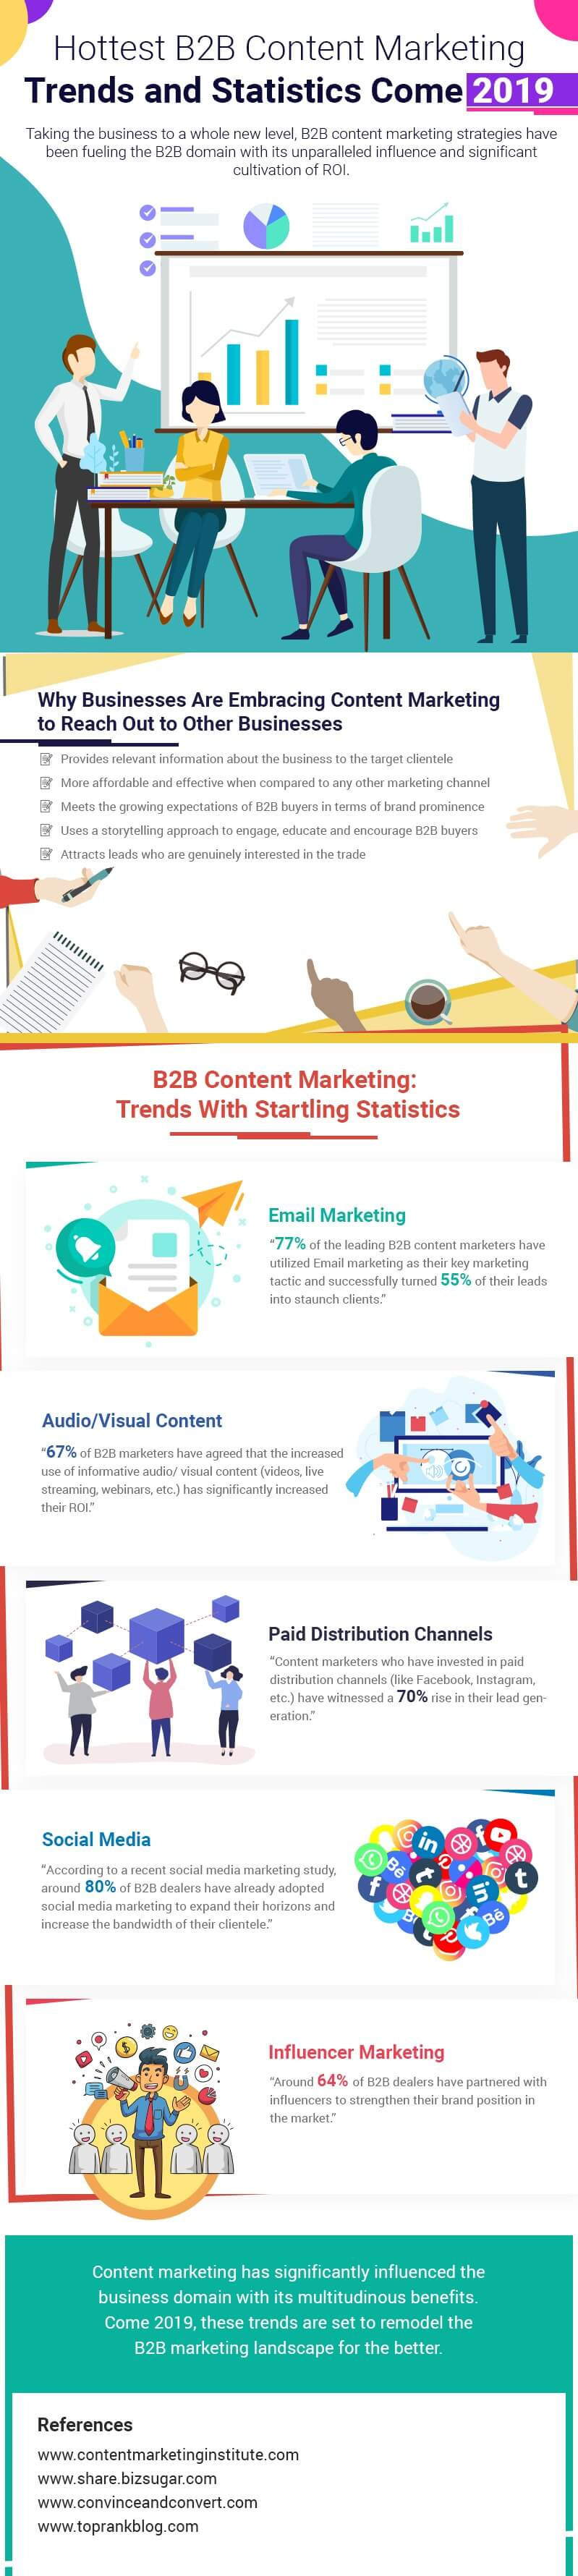 latest b2b content marketing trends and statistics in 2019